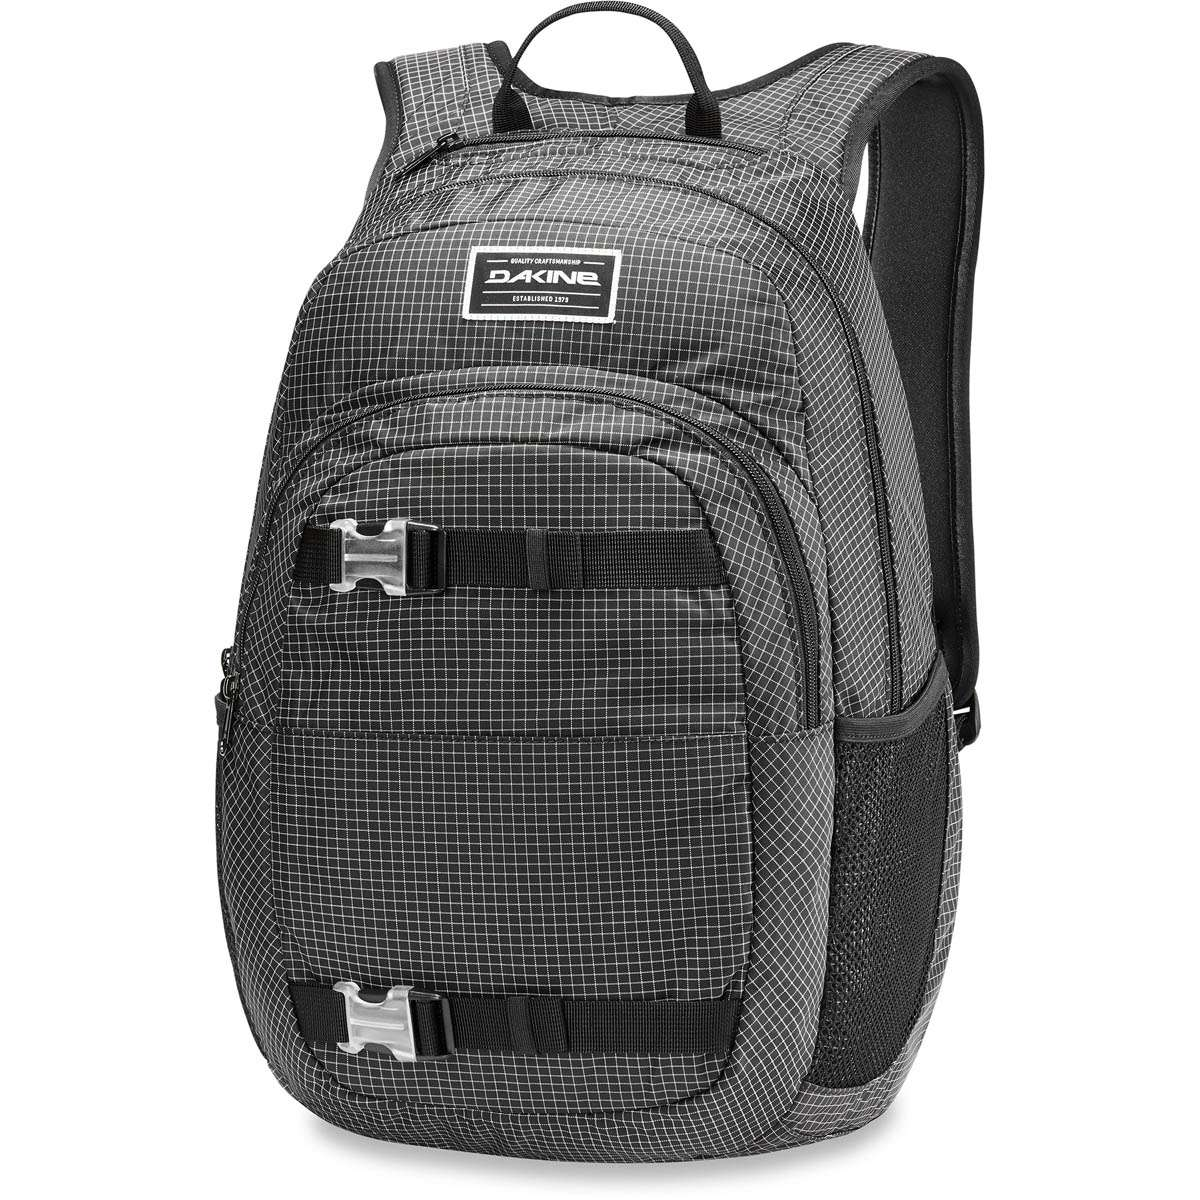 27477eb78d5f1 Dakine Section Wet Dry Backpack- Fenix Toulouse Handball